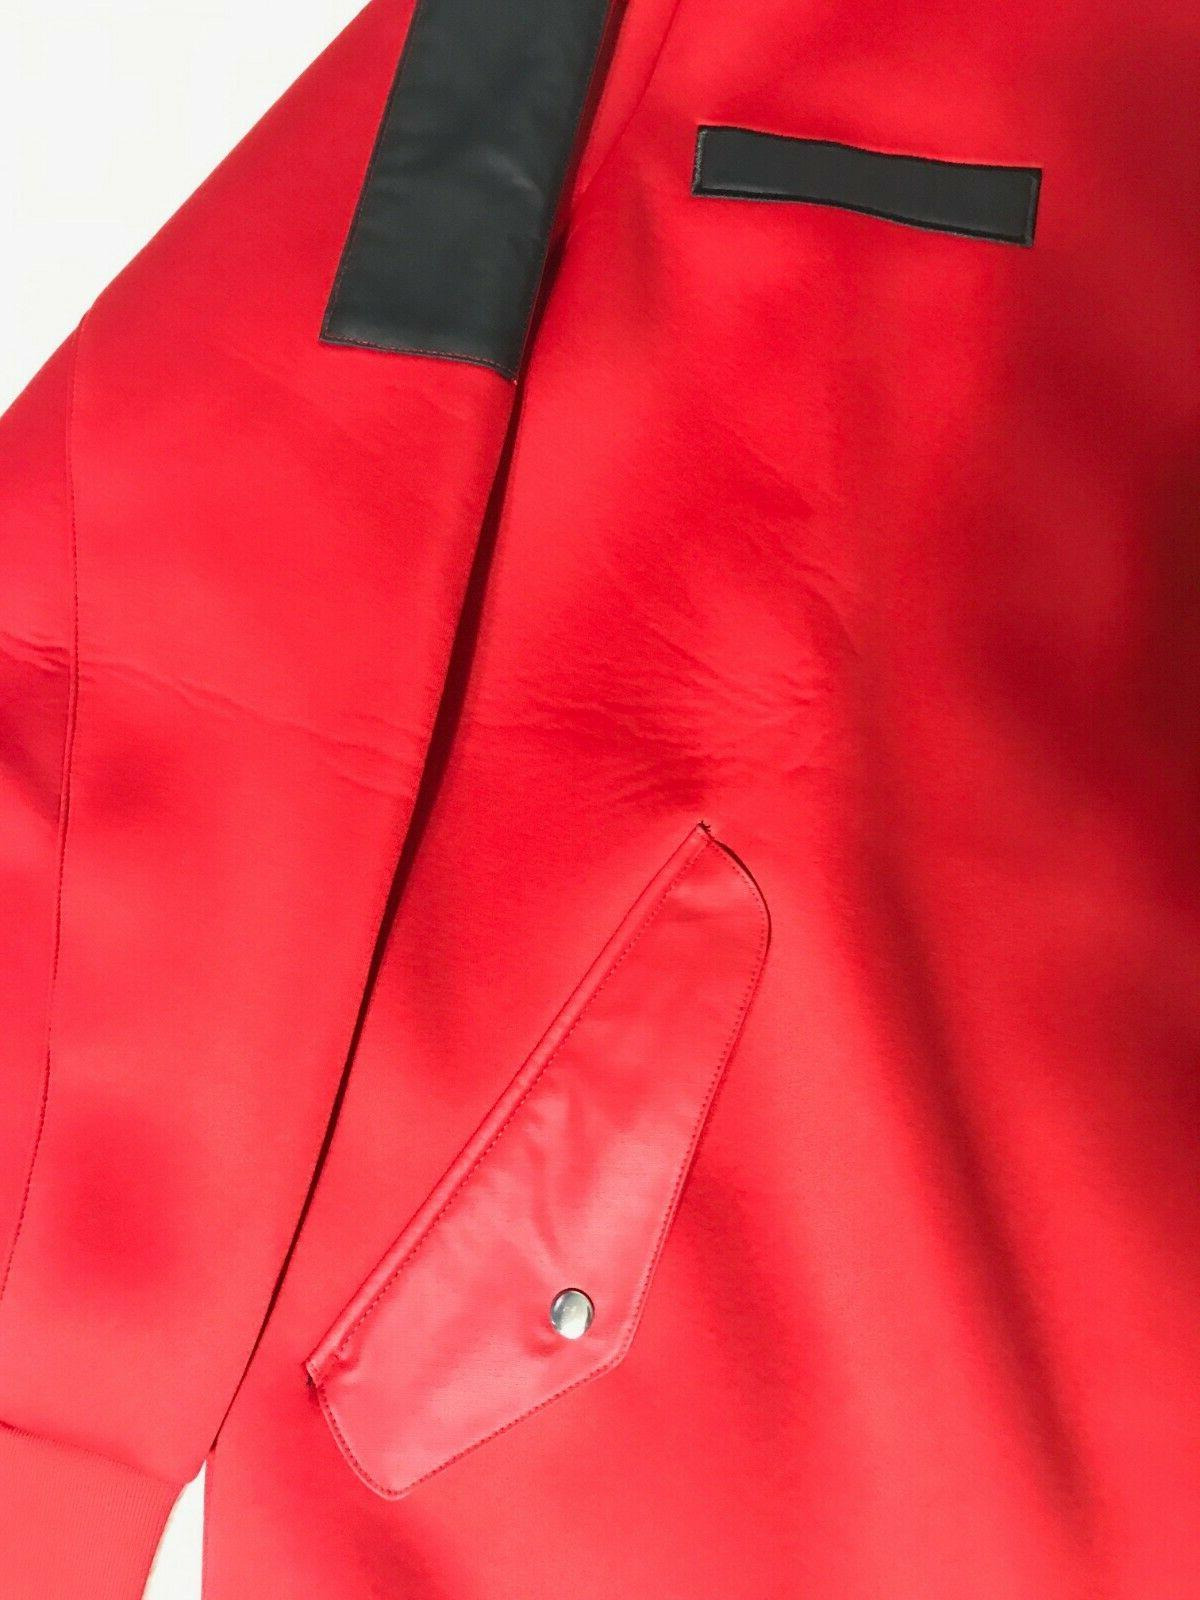 NEW Men's Red Dame Core Bomber Embossed Jacket Size AO1644